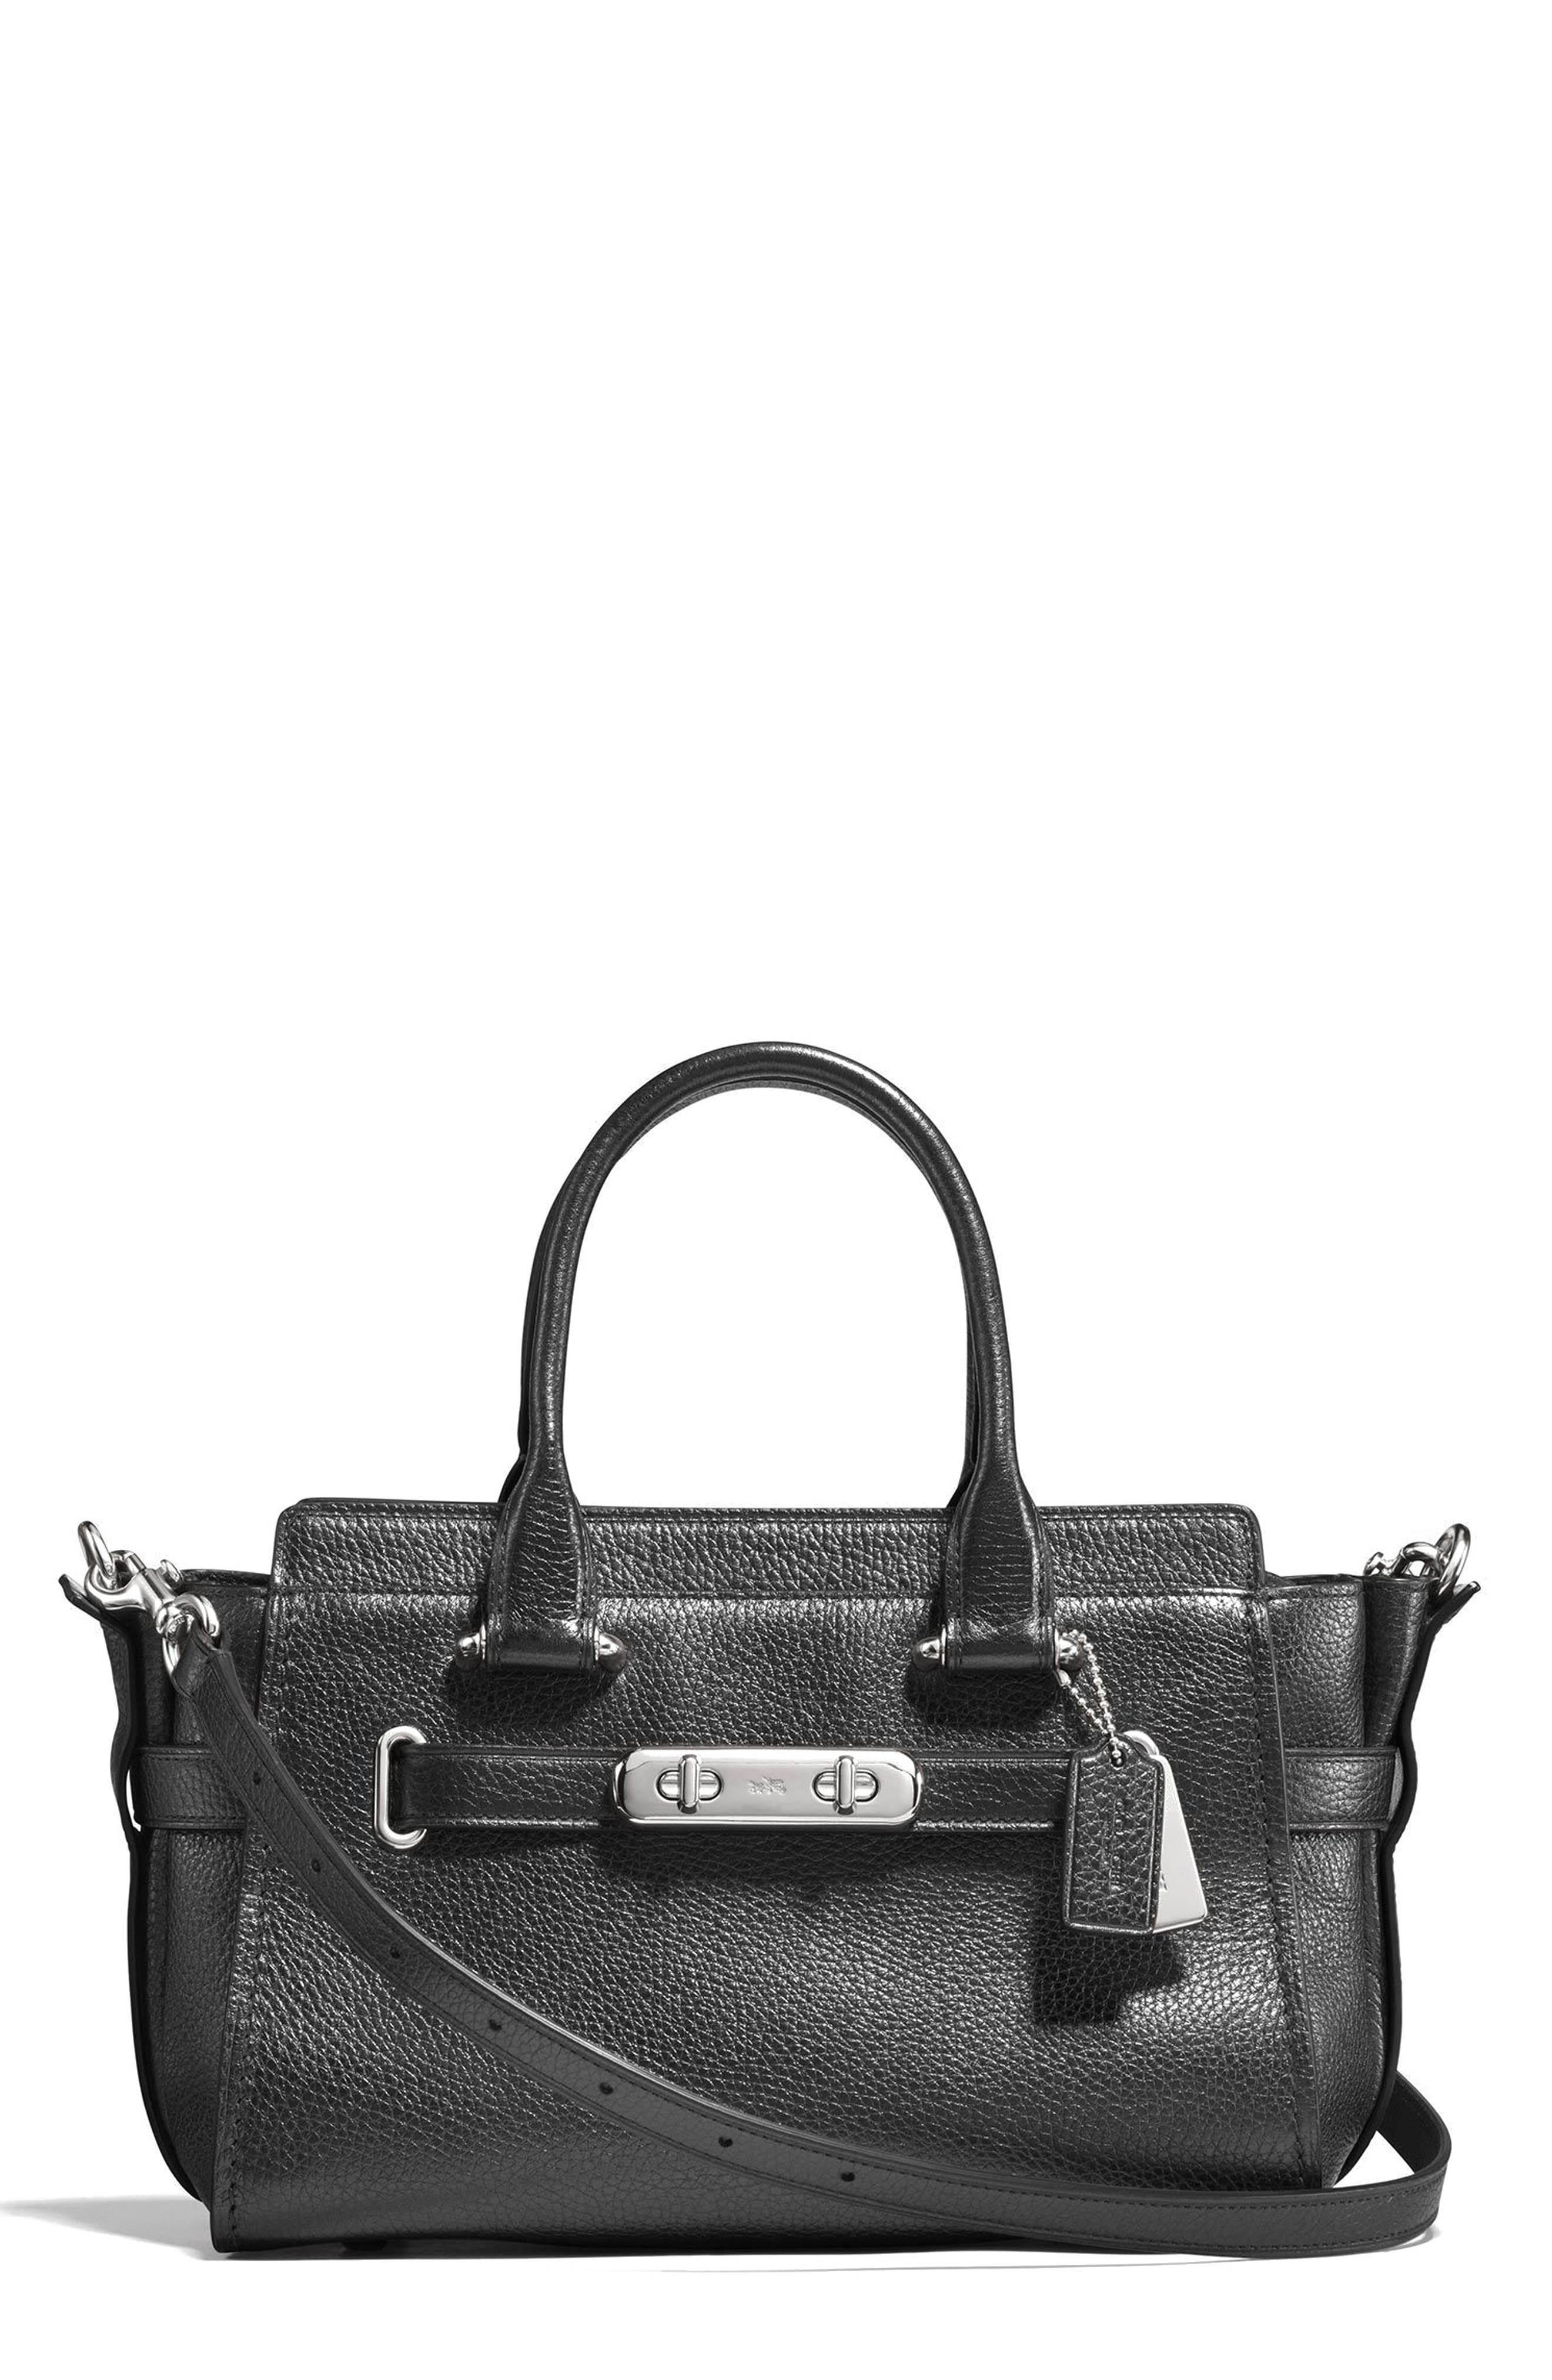 Swagger 27 Metallic Pebbled Leather Satchel,                             Main thumbnail 1, color,                             040